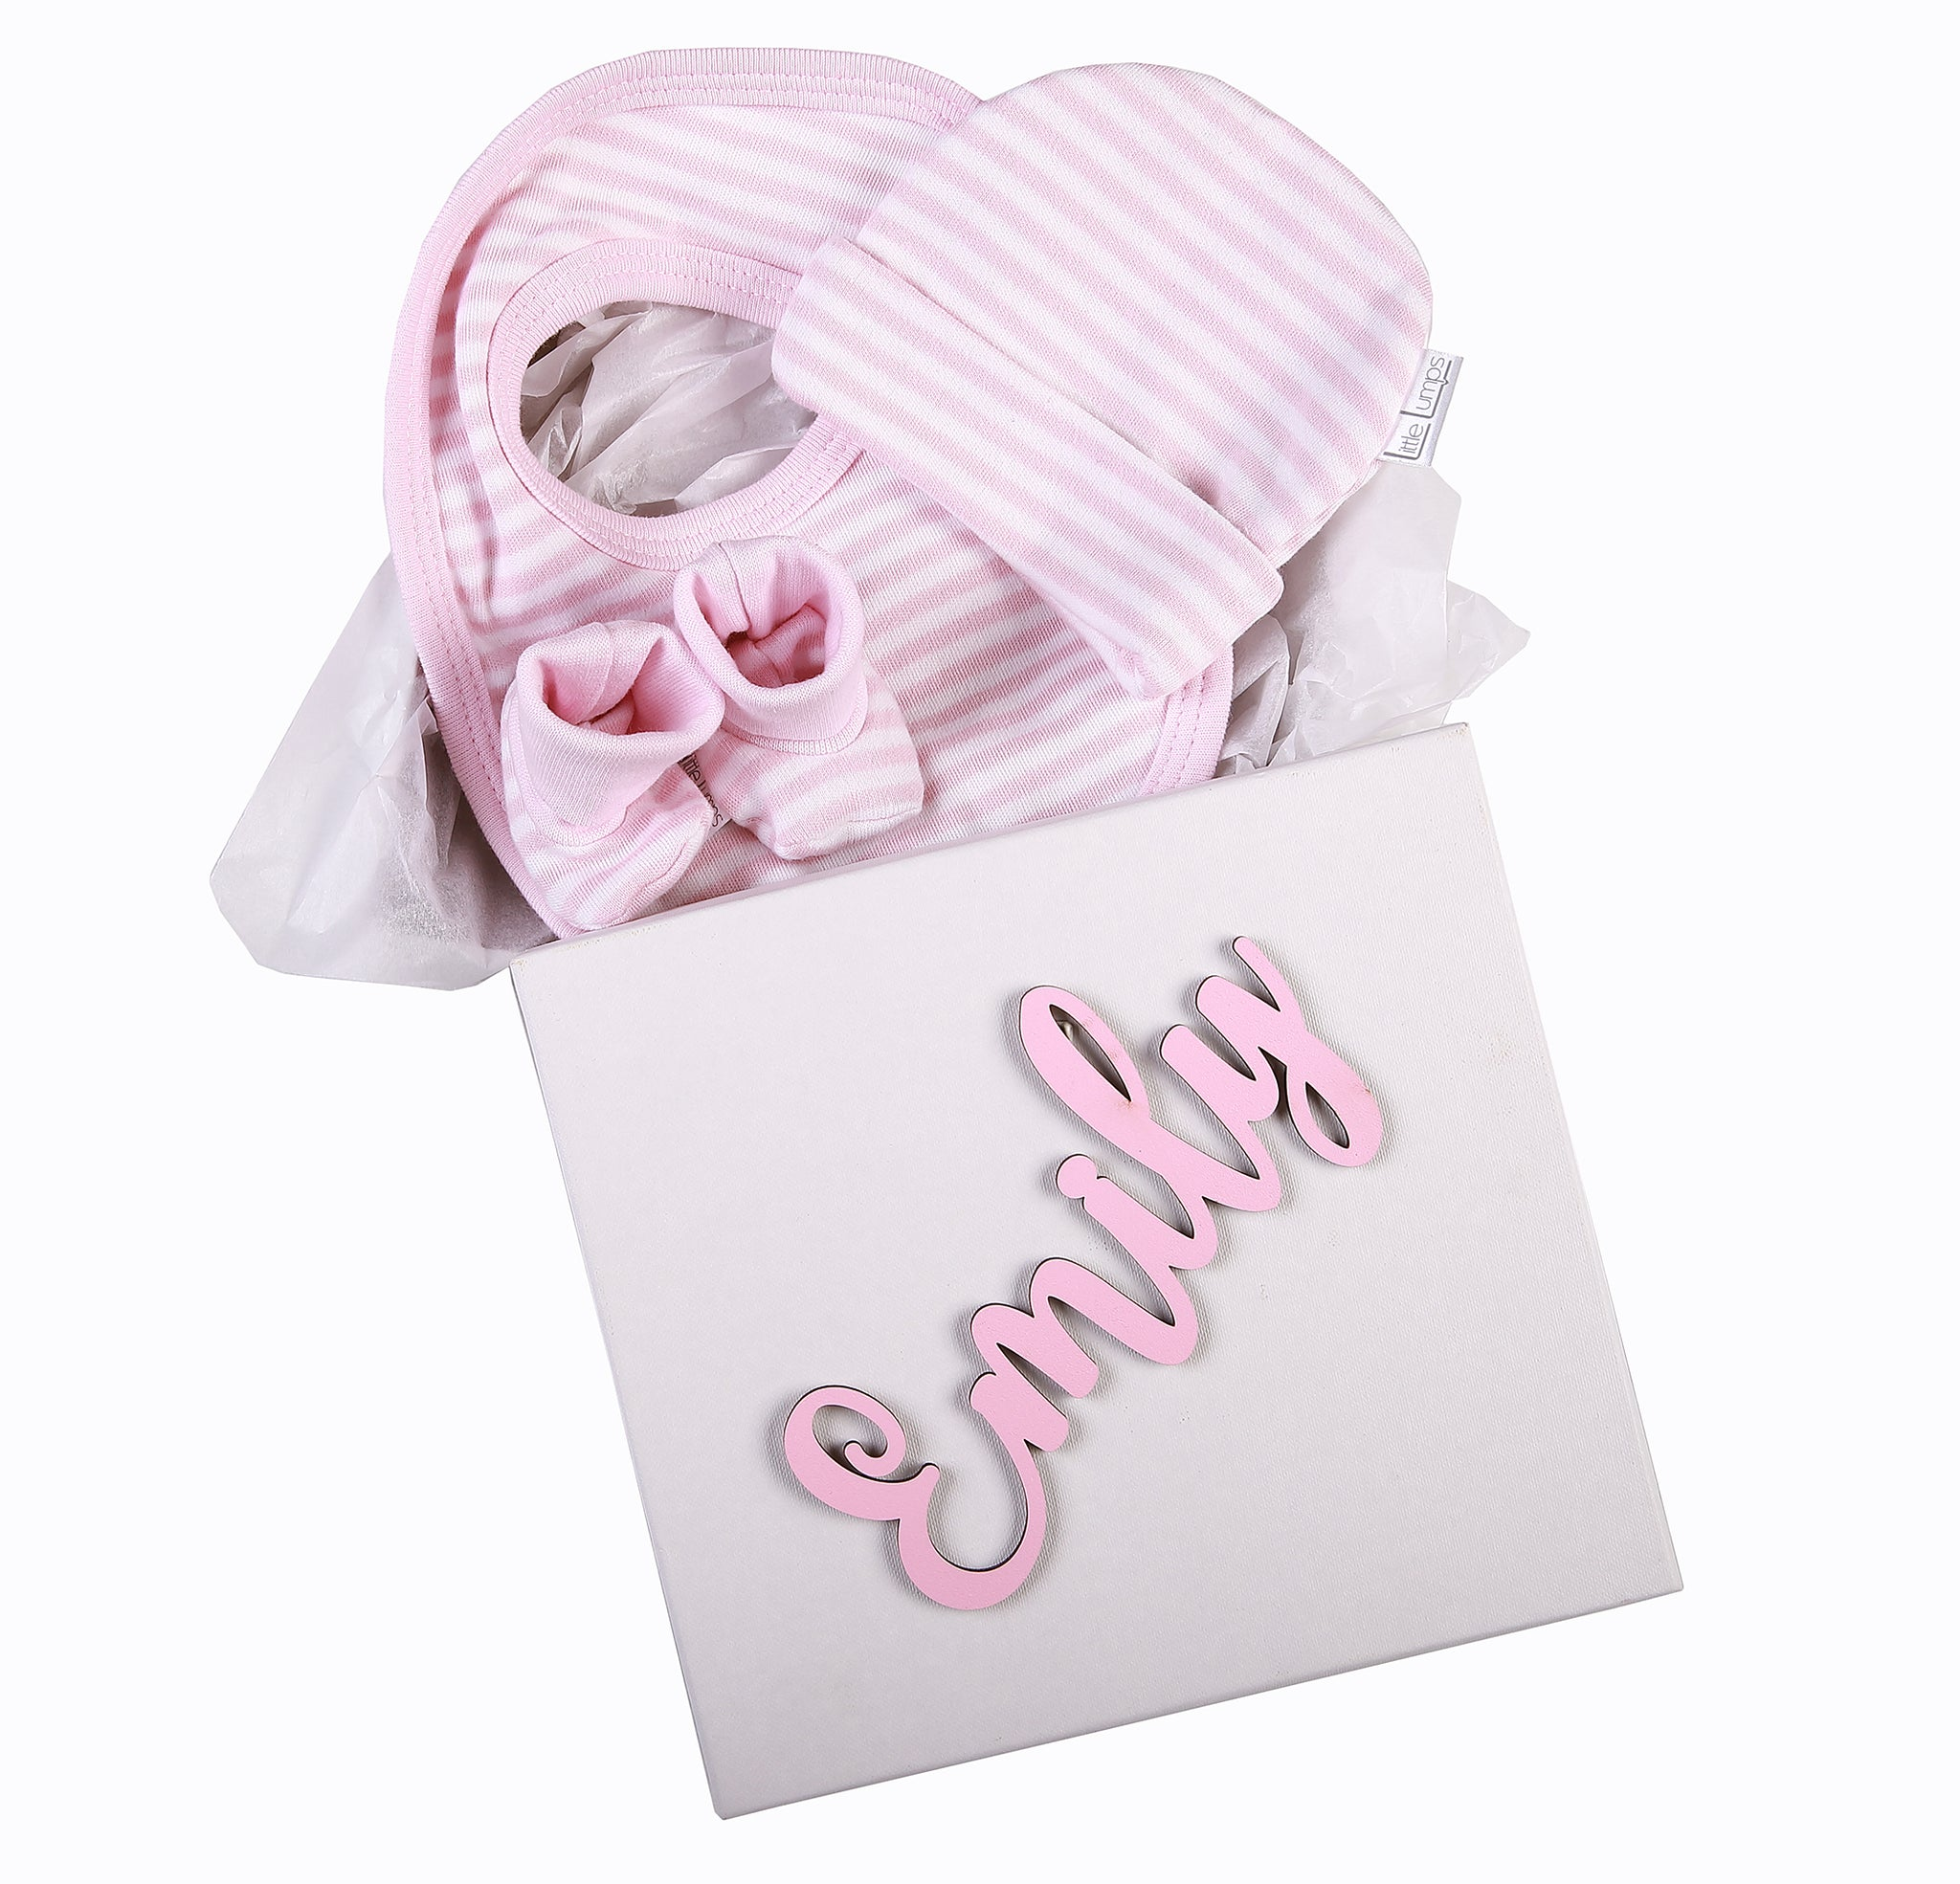 Gift Set 2 - Personalised Box with hat,bib and booties - Little Lumps Baby Clothing Online